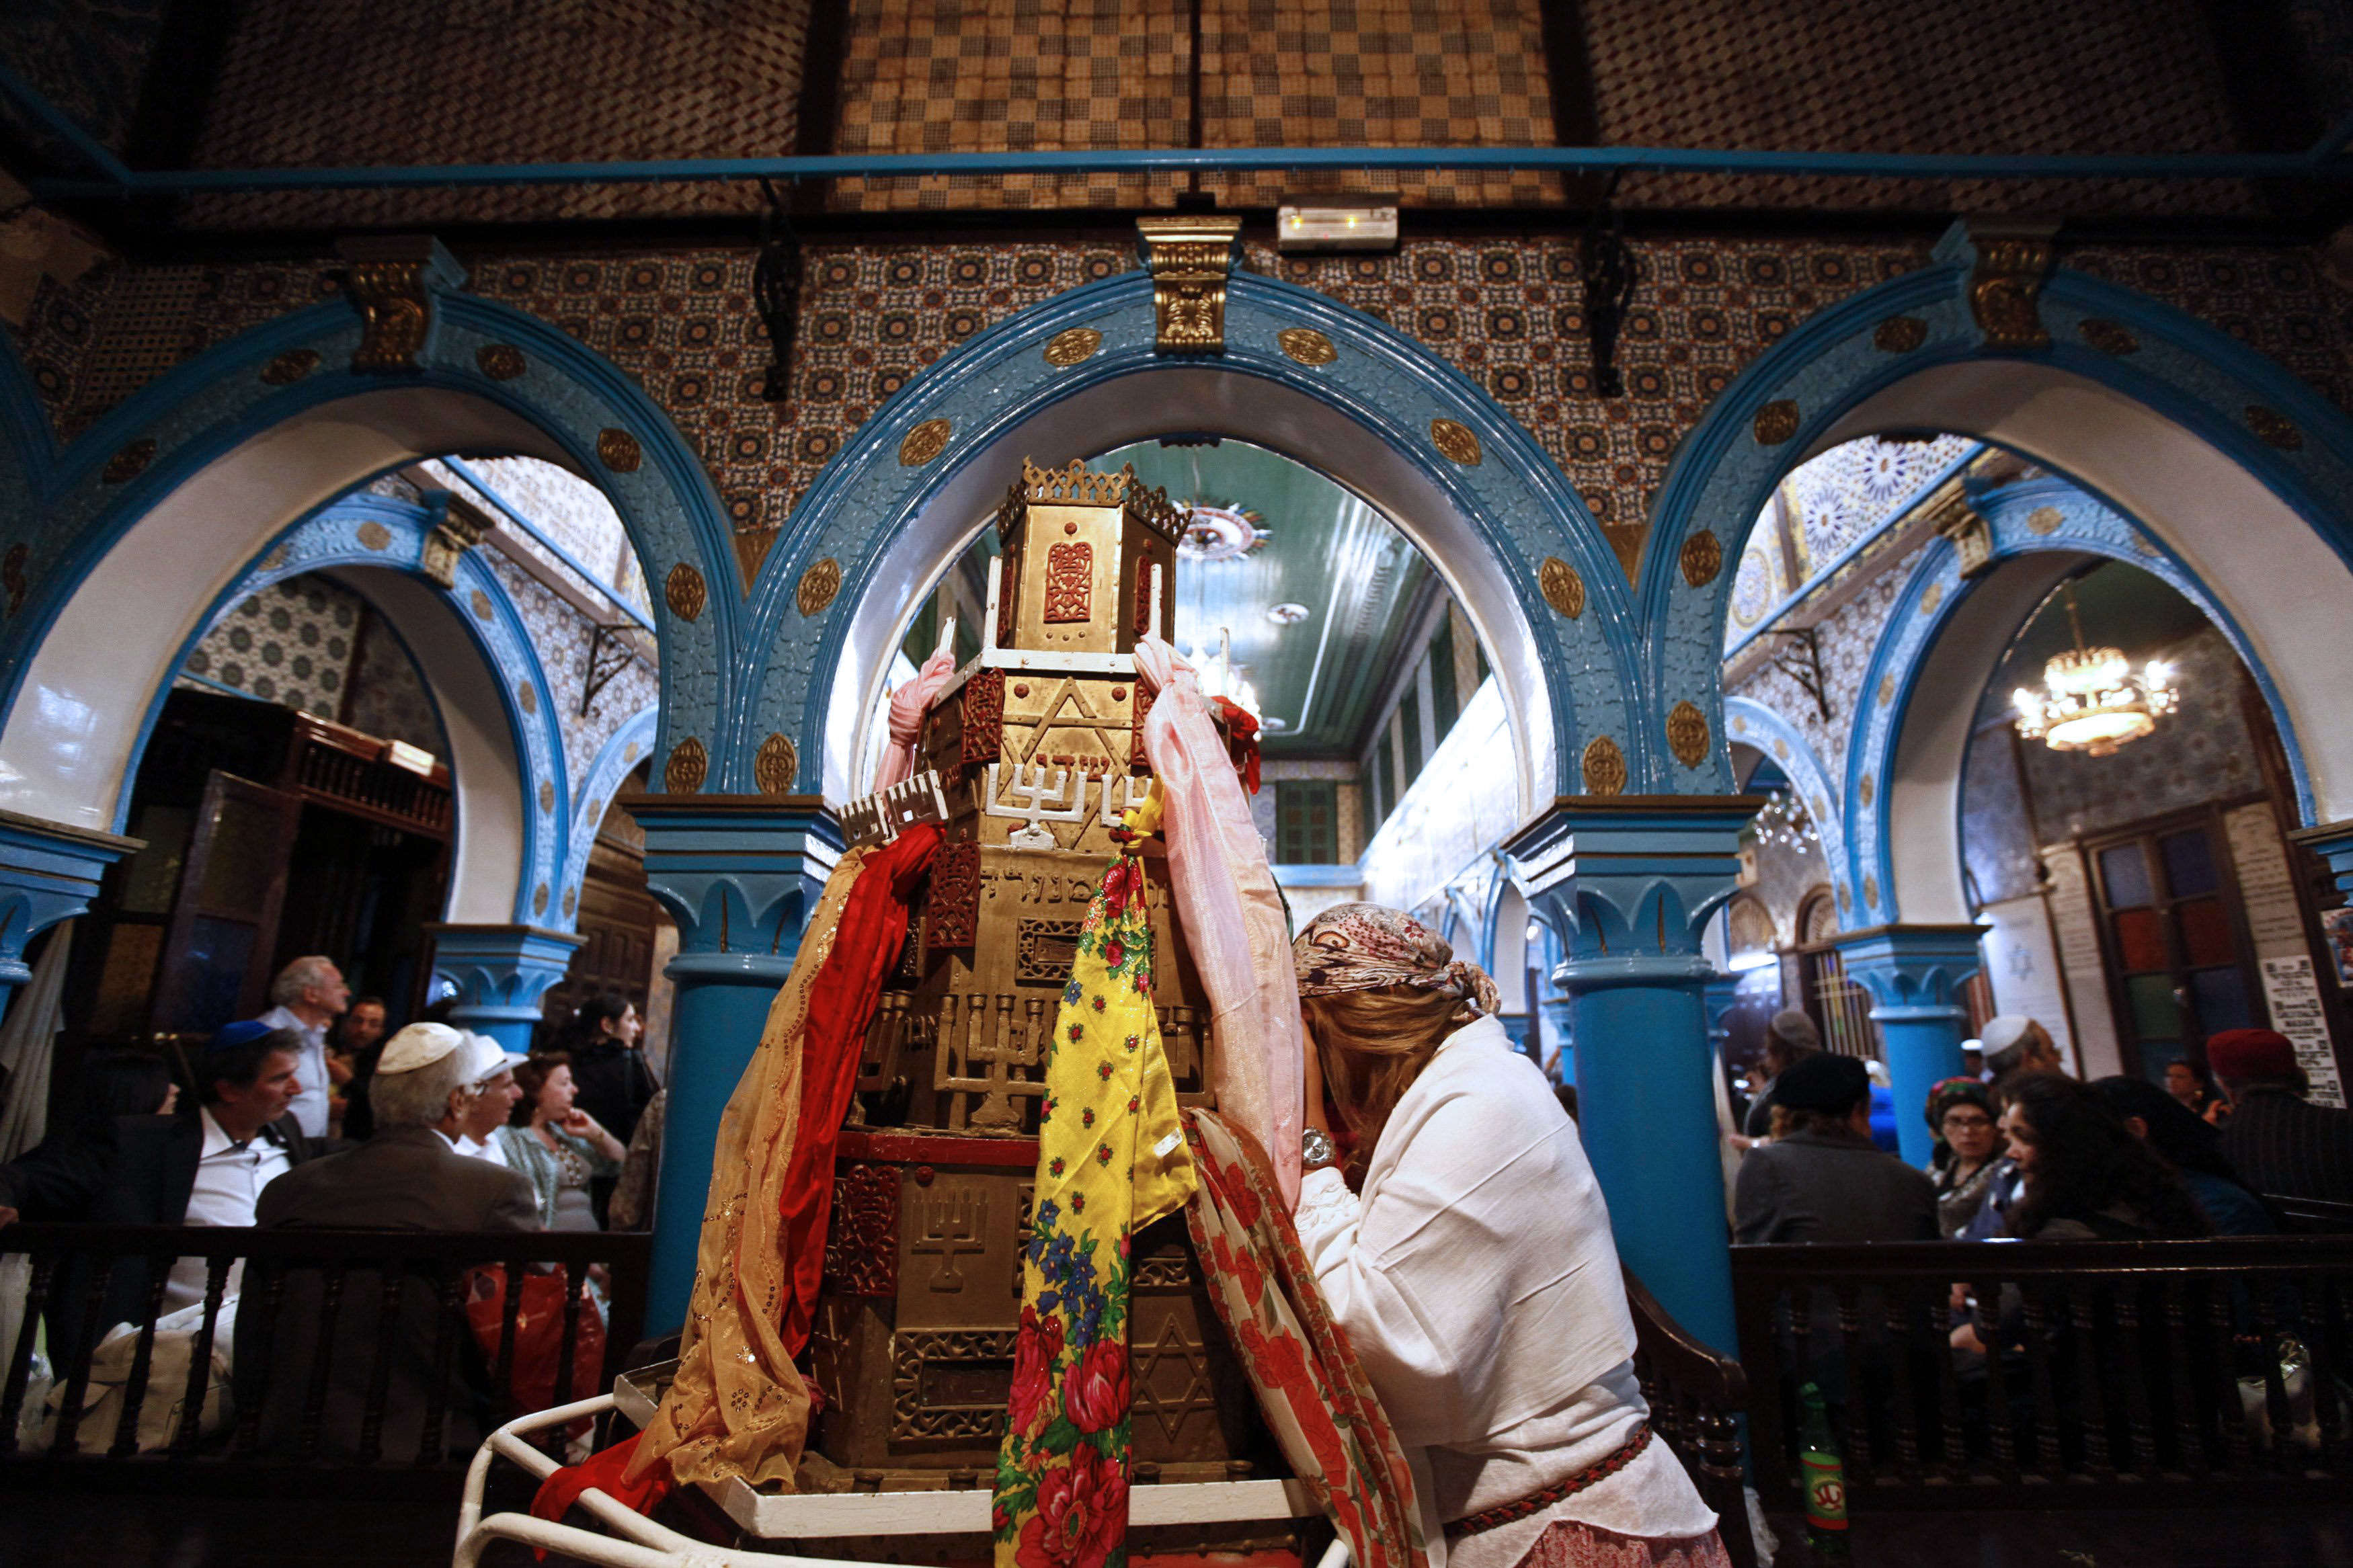 A Jewish worshipper prays during a pilgrimage to the El Ghriba synagogue in Djerba, Tunisia (ANIS MILI / REUTERS)